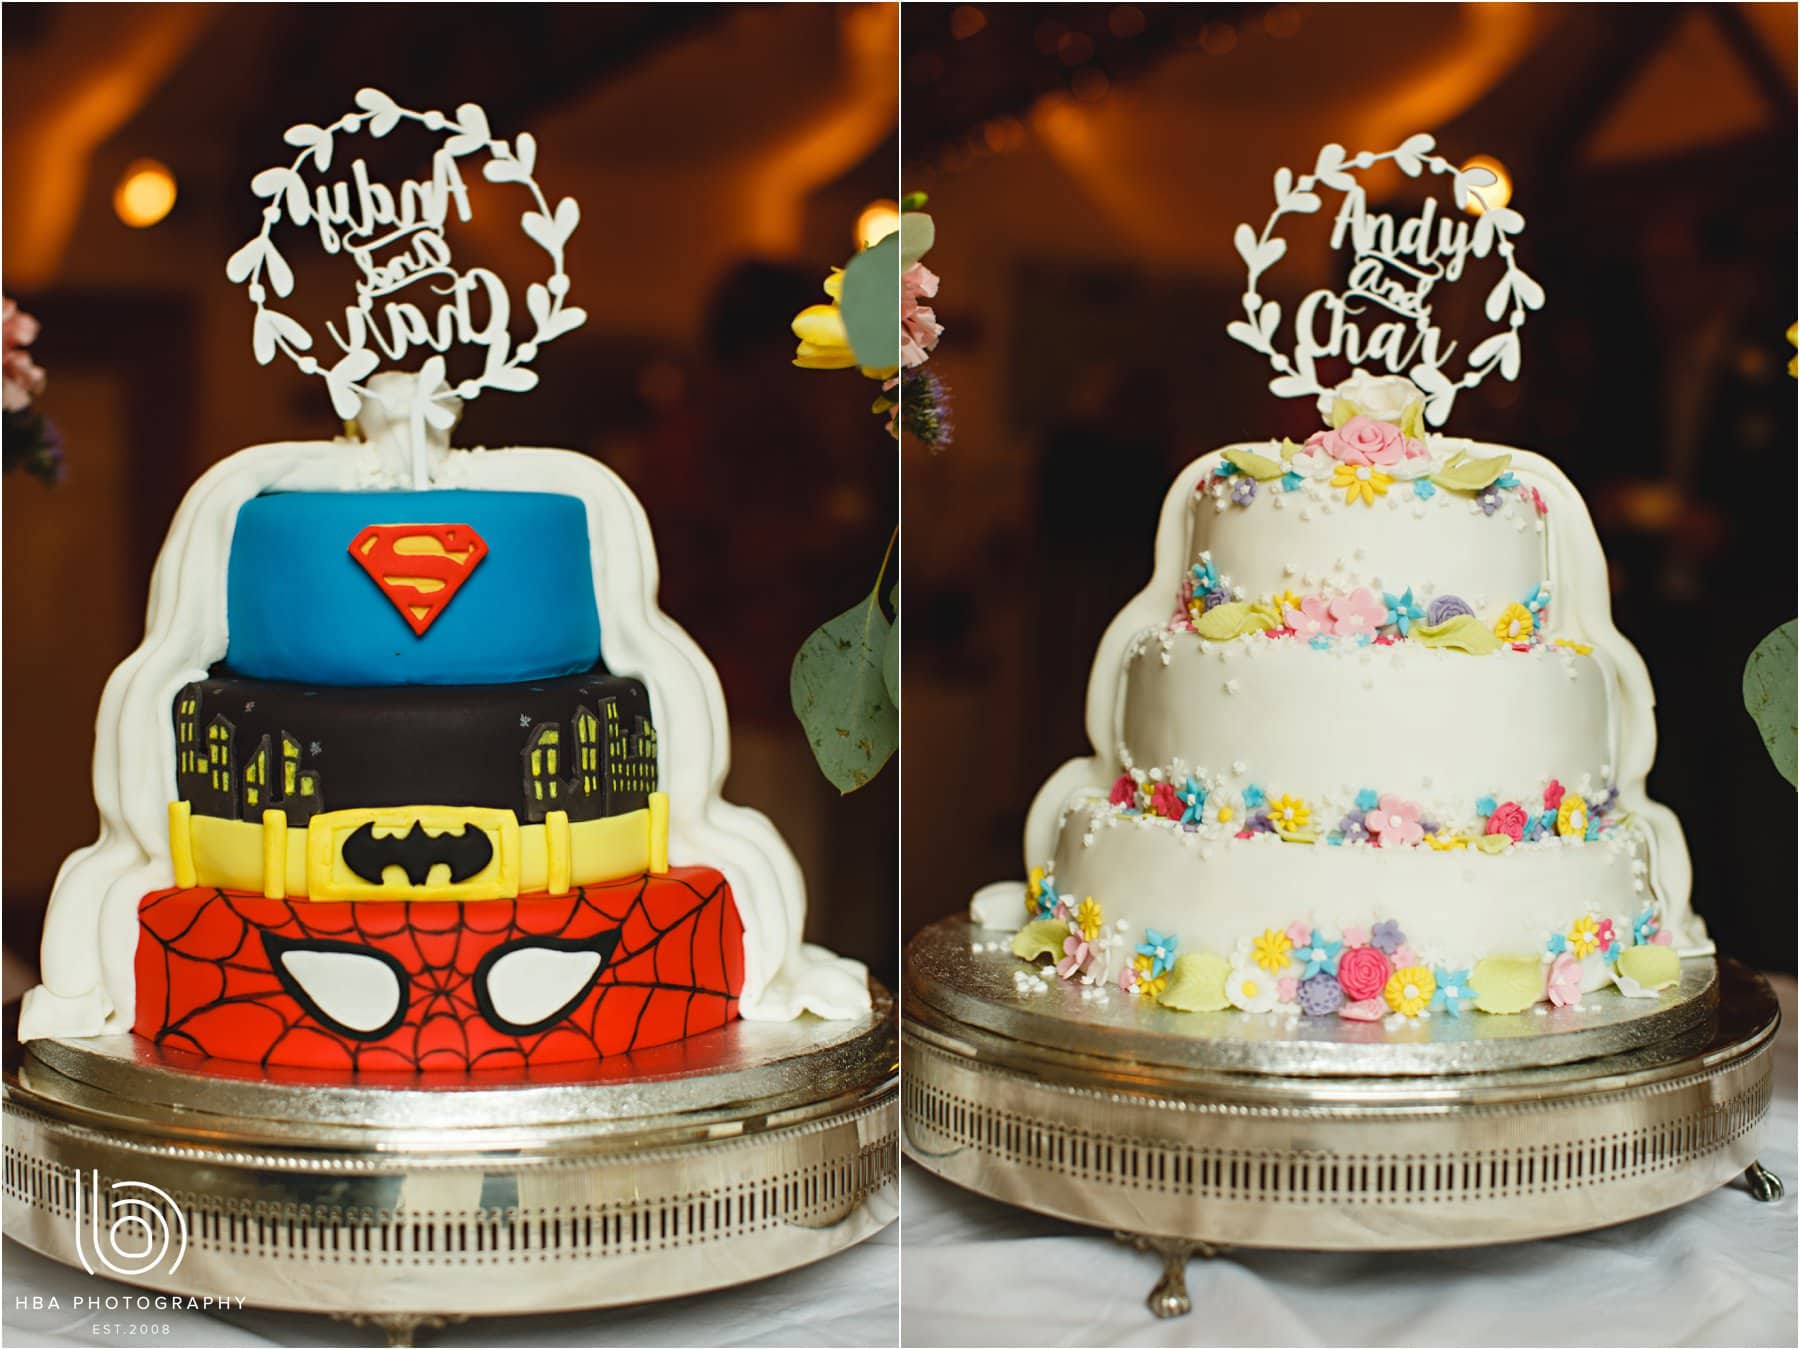 the superhero wedding cake